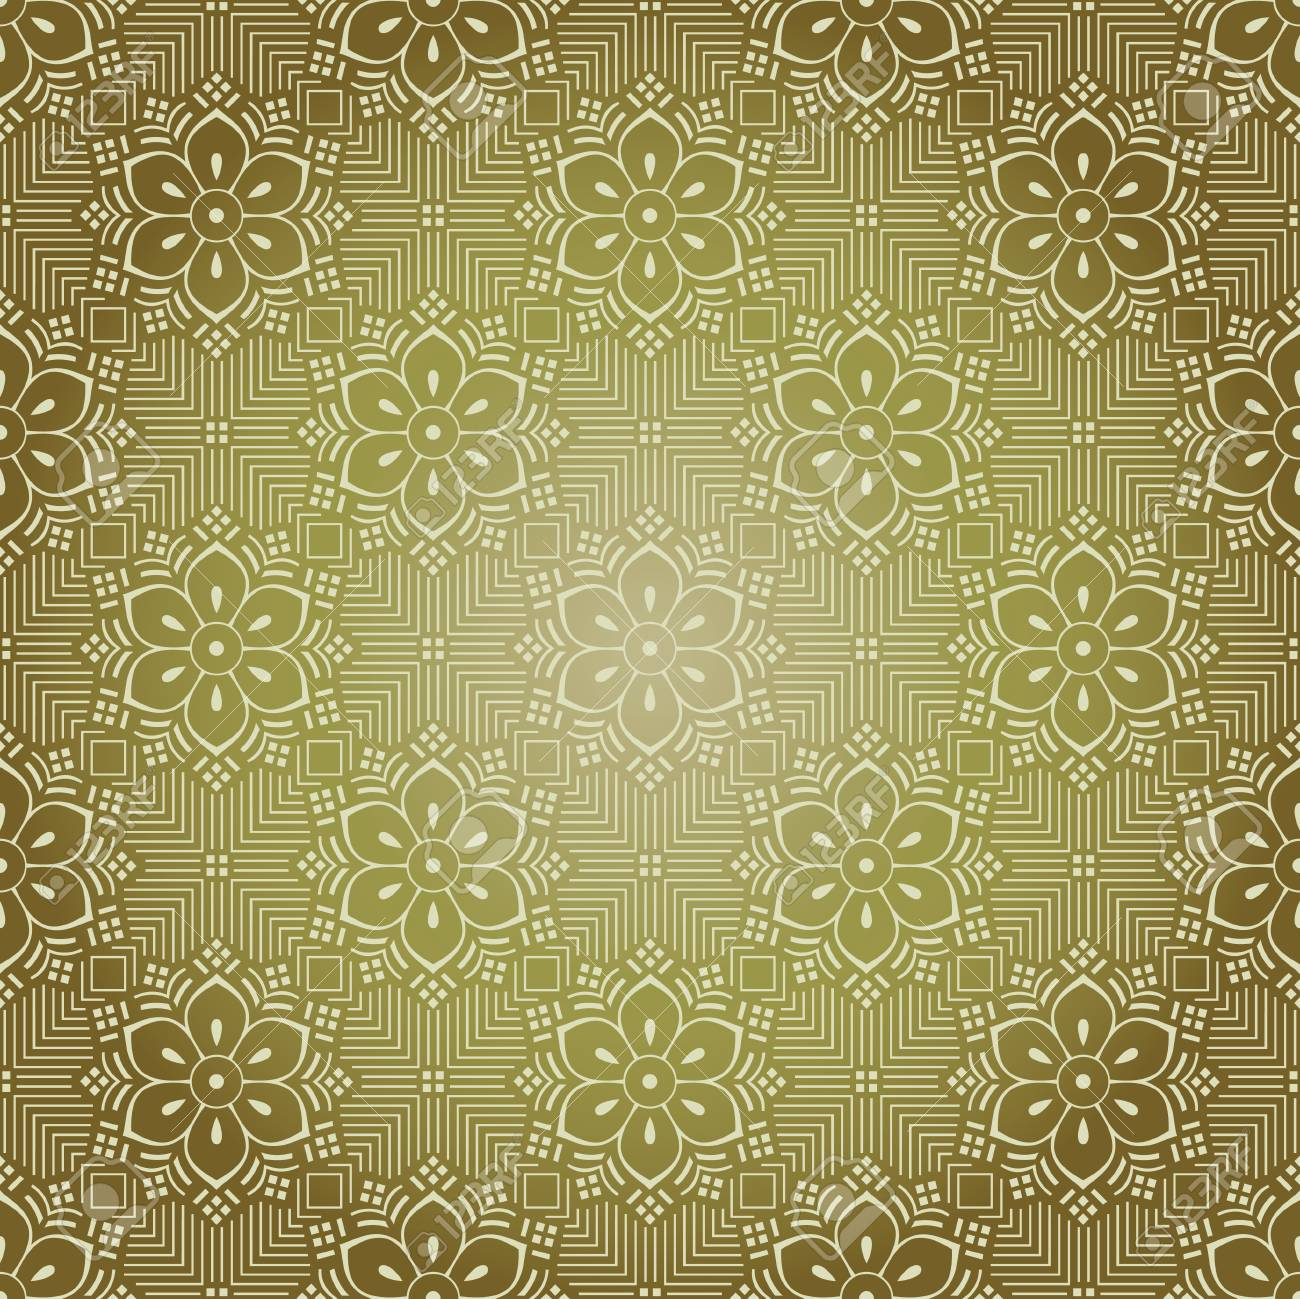 Seamless Golden Antique Floral Wallpaper Royalty Free Cliparts